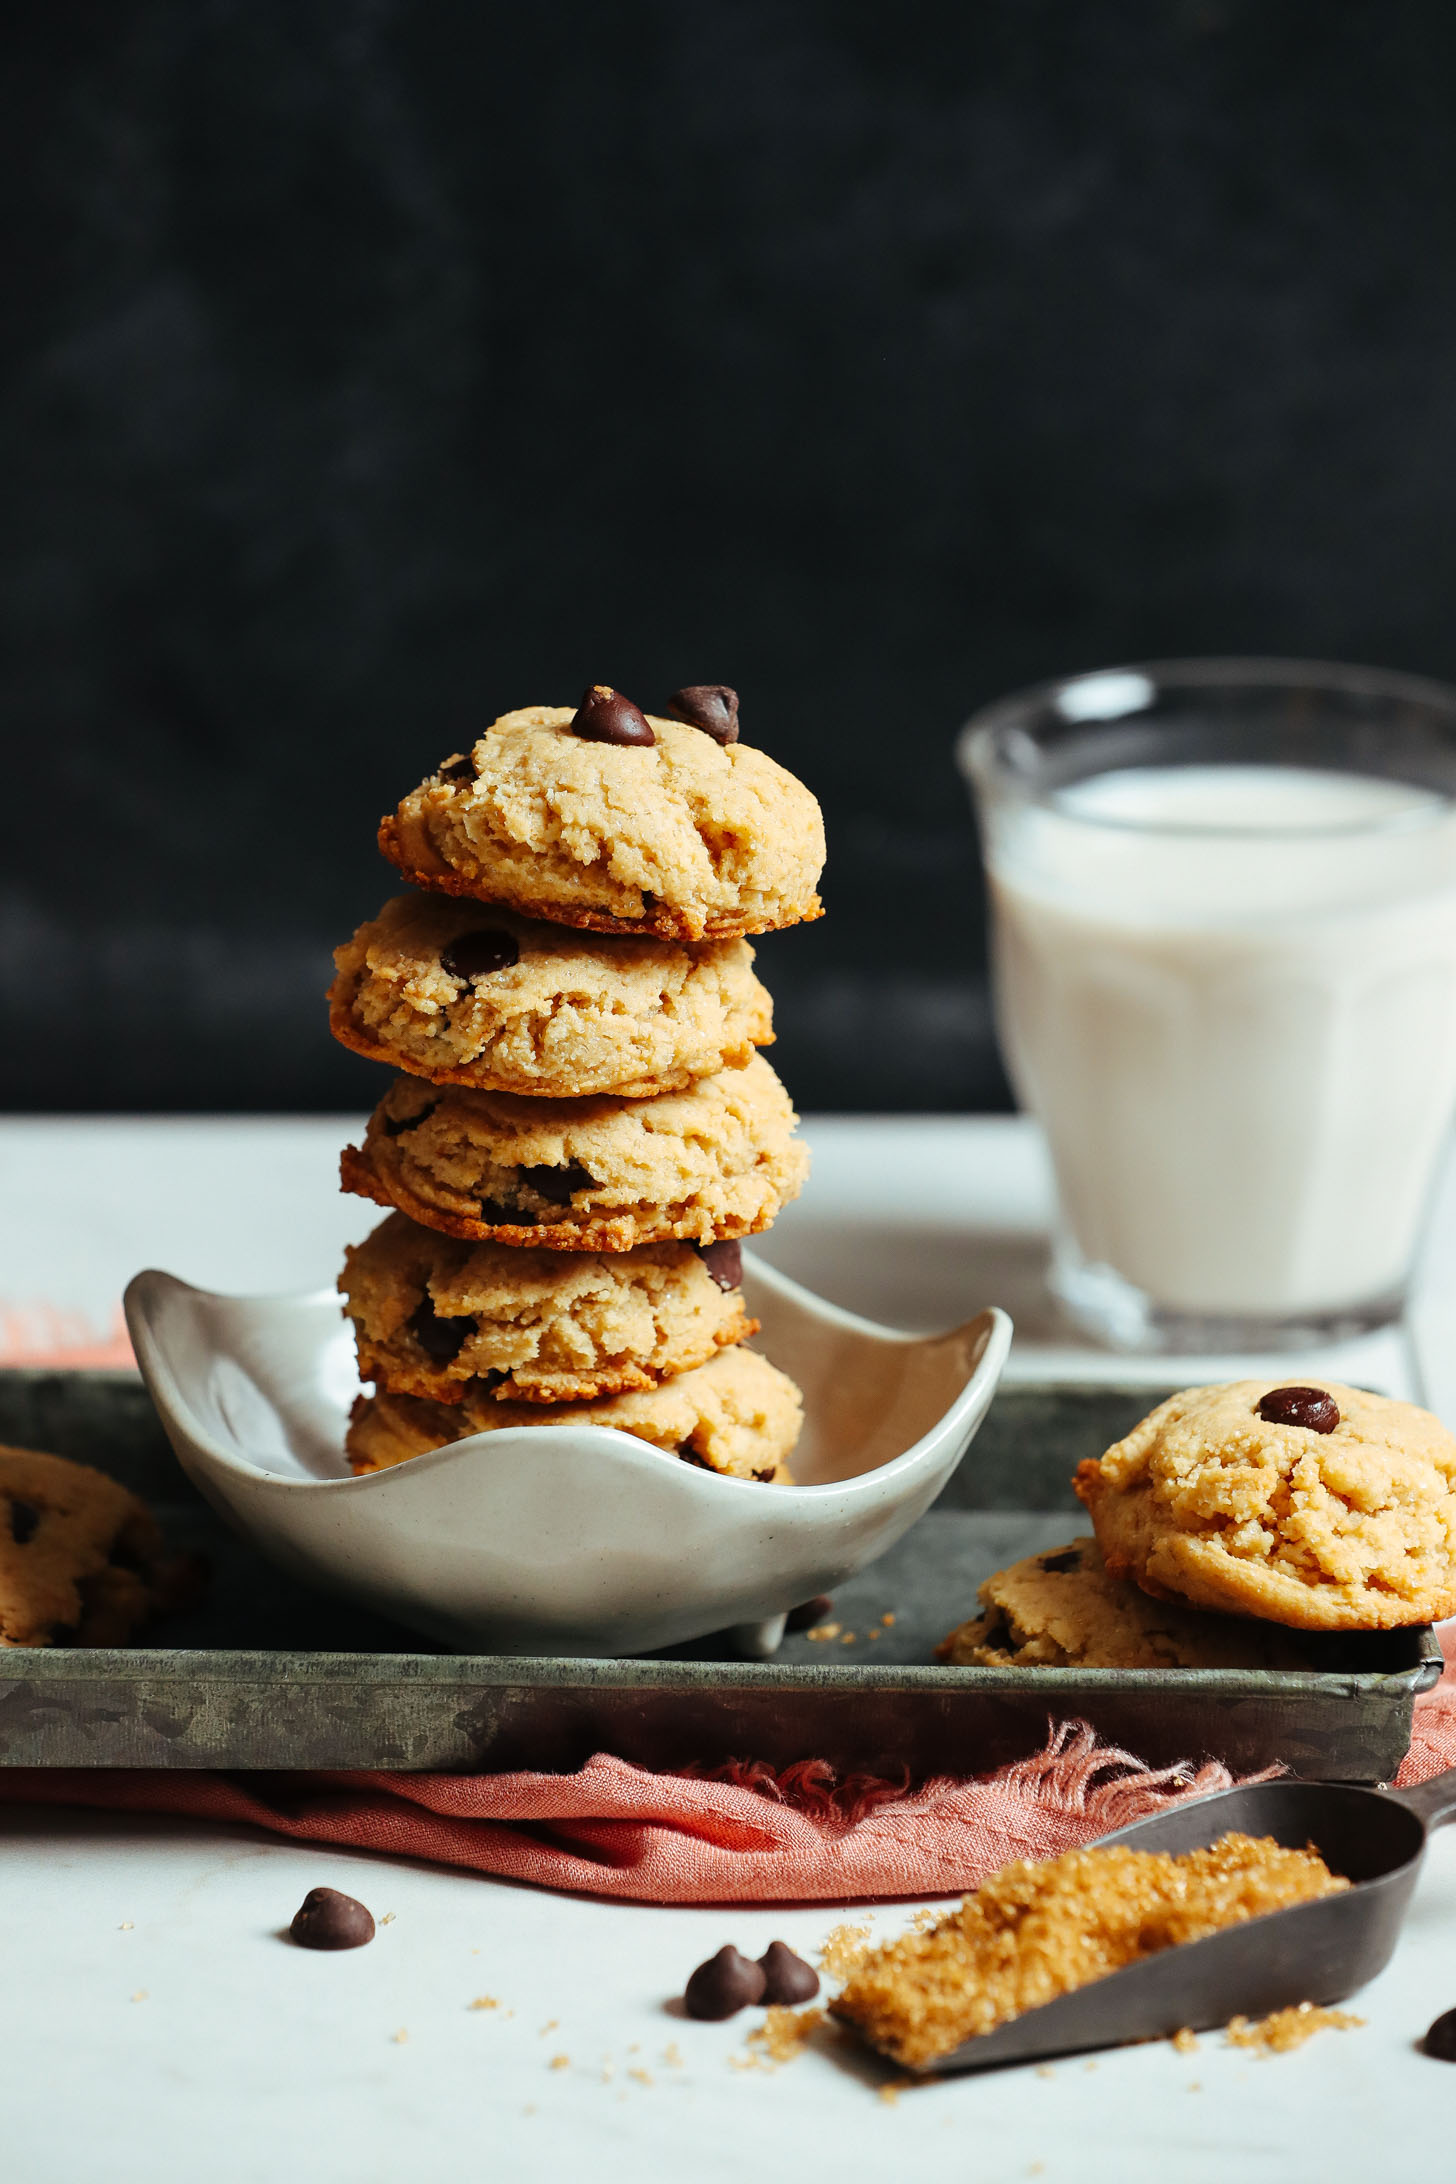 Stack of delicious gluten-free vegan chocolate chip cookies beside a glass of almond milk